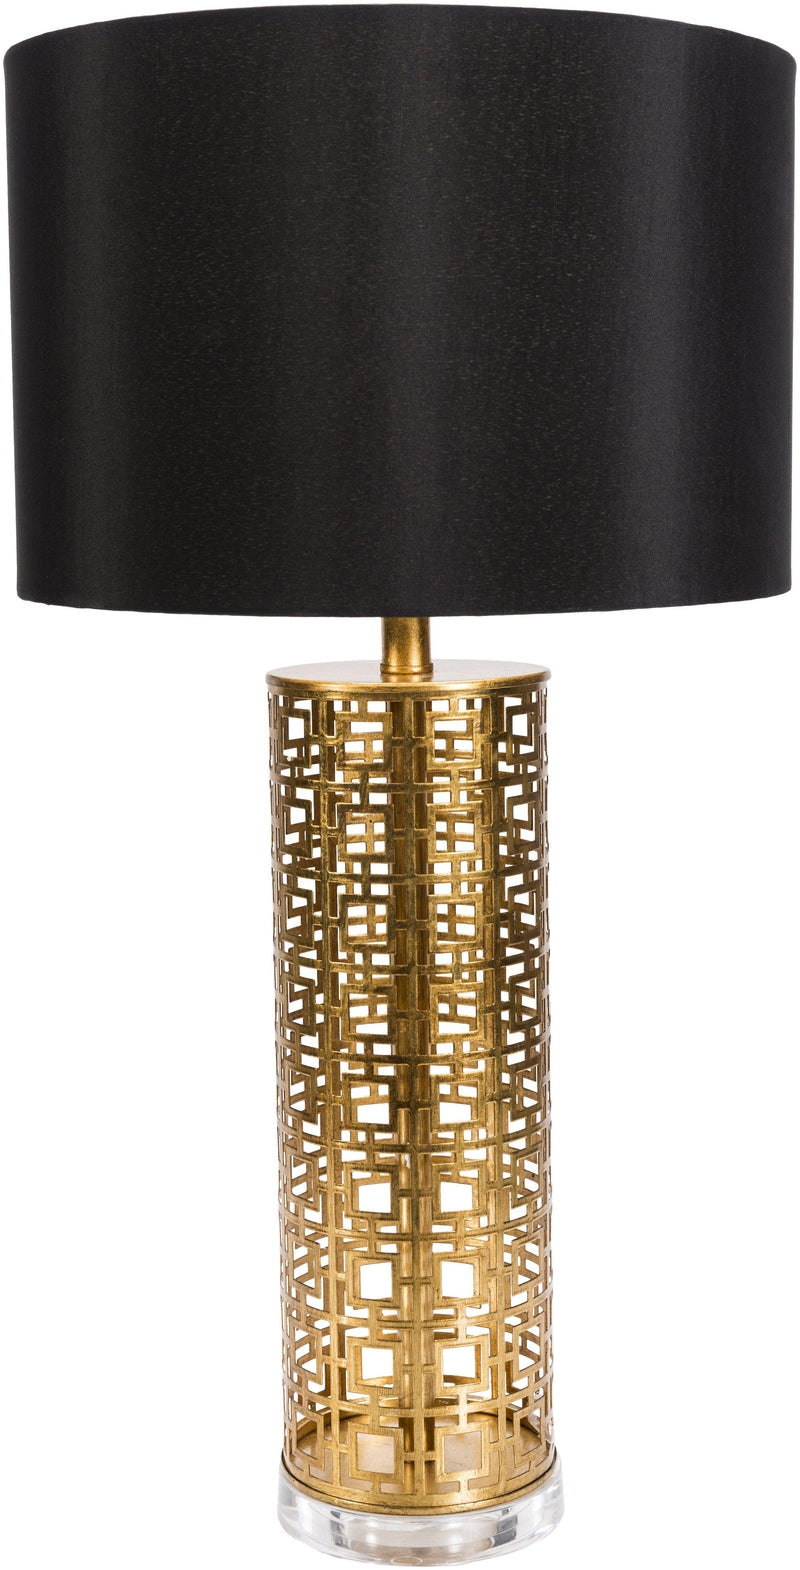 Rreshen Modern Table Lamp